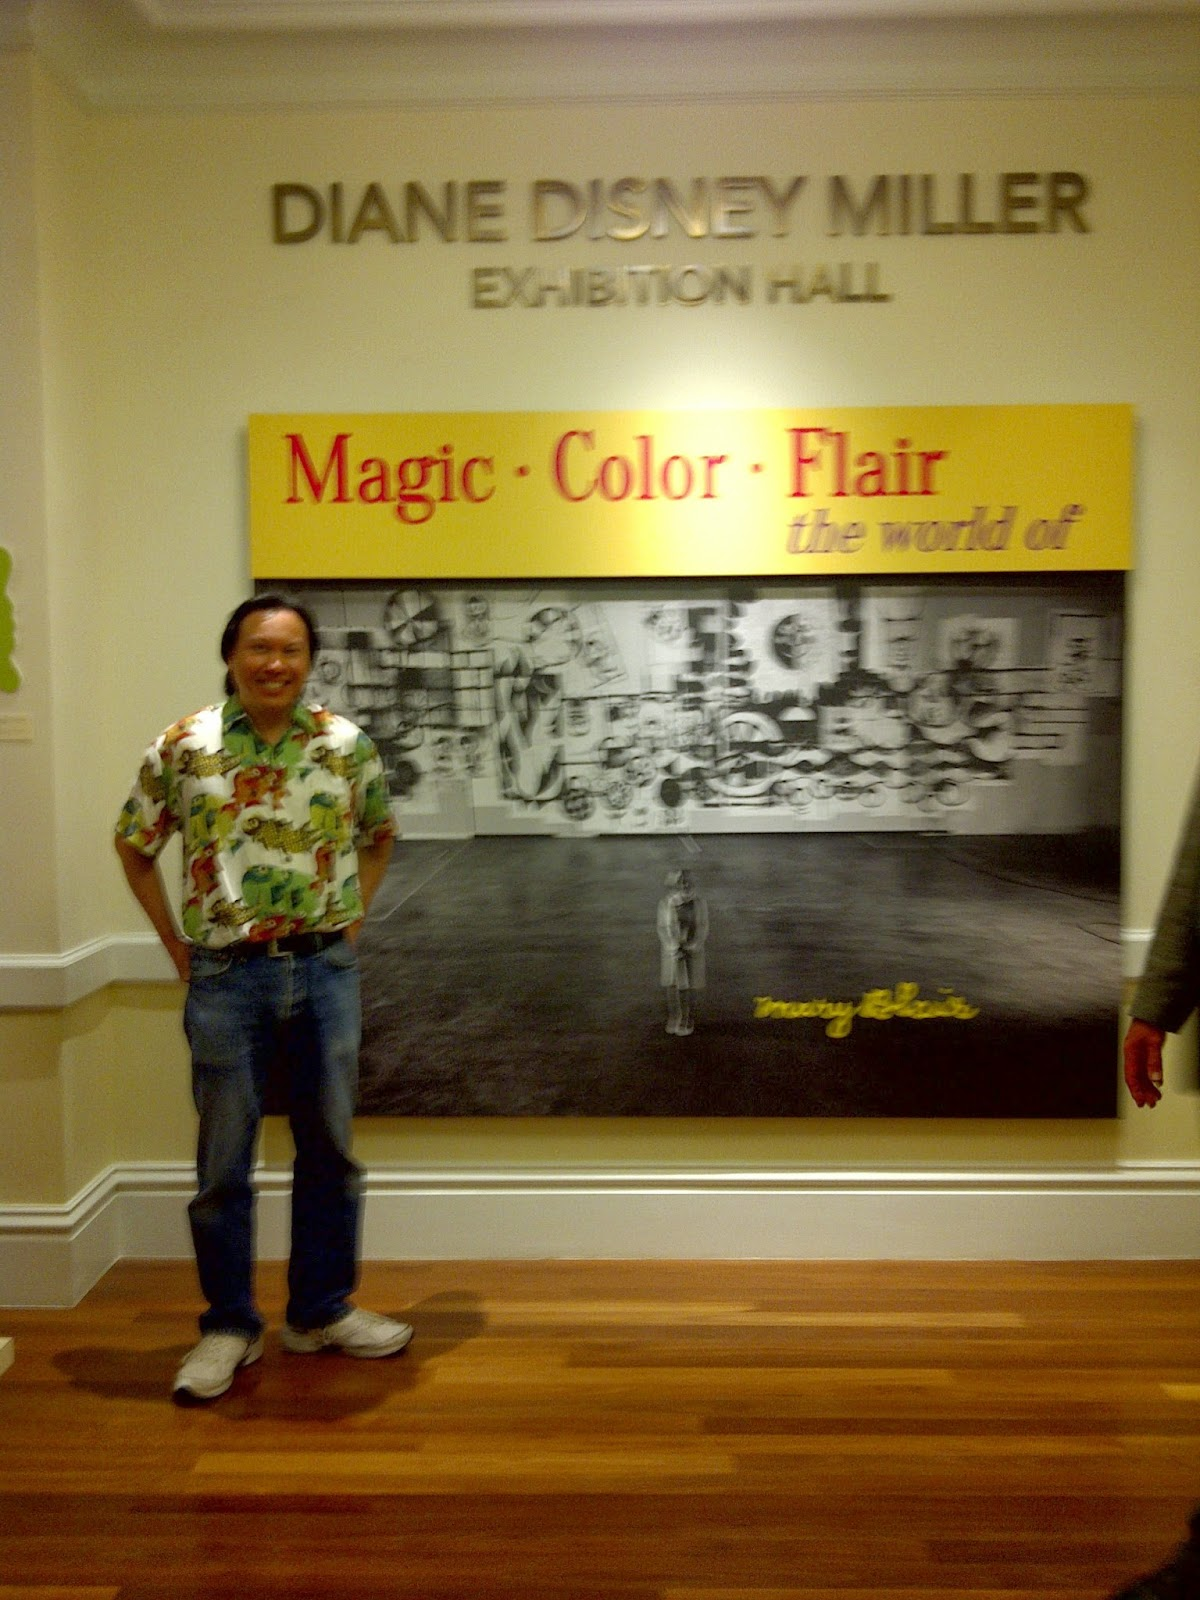 The exhibit is held in the annex building in the recently renamed diane disney miller exhibition hall the layout of the exhibit uses color and flair to